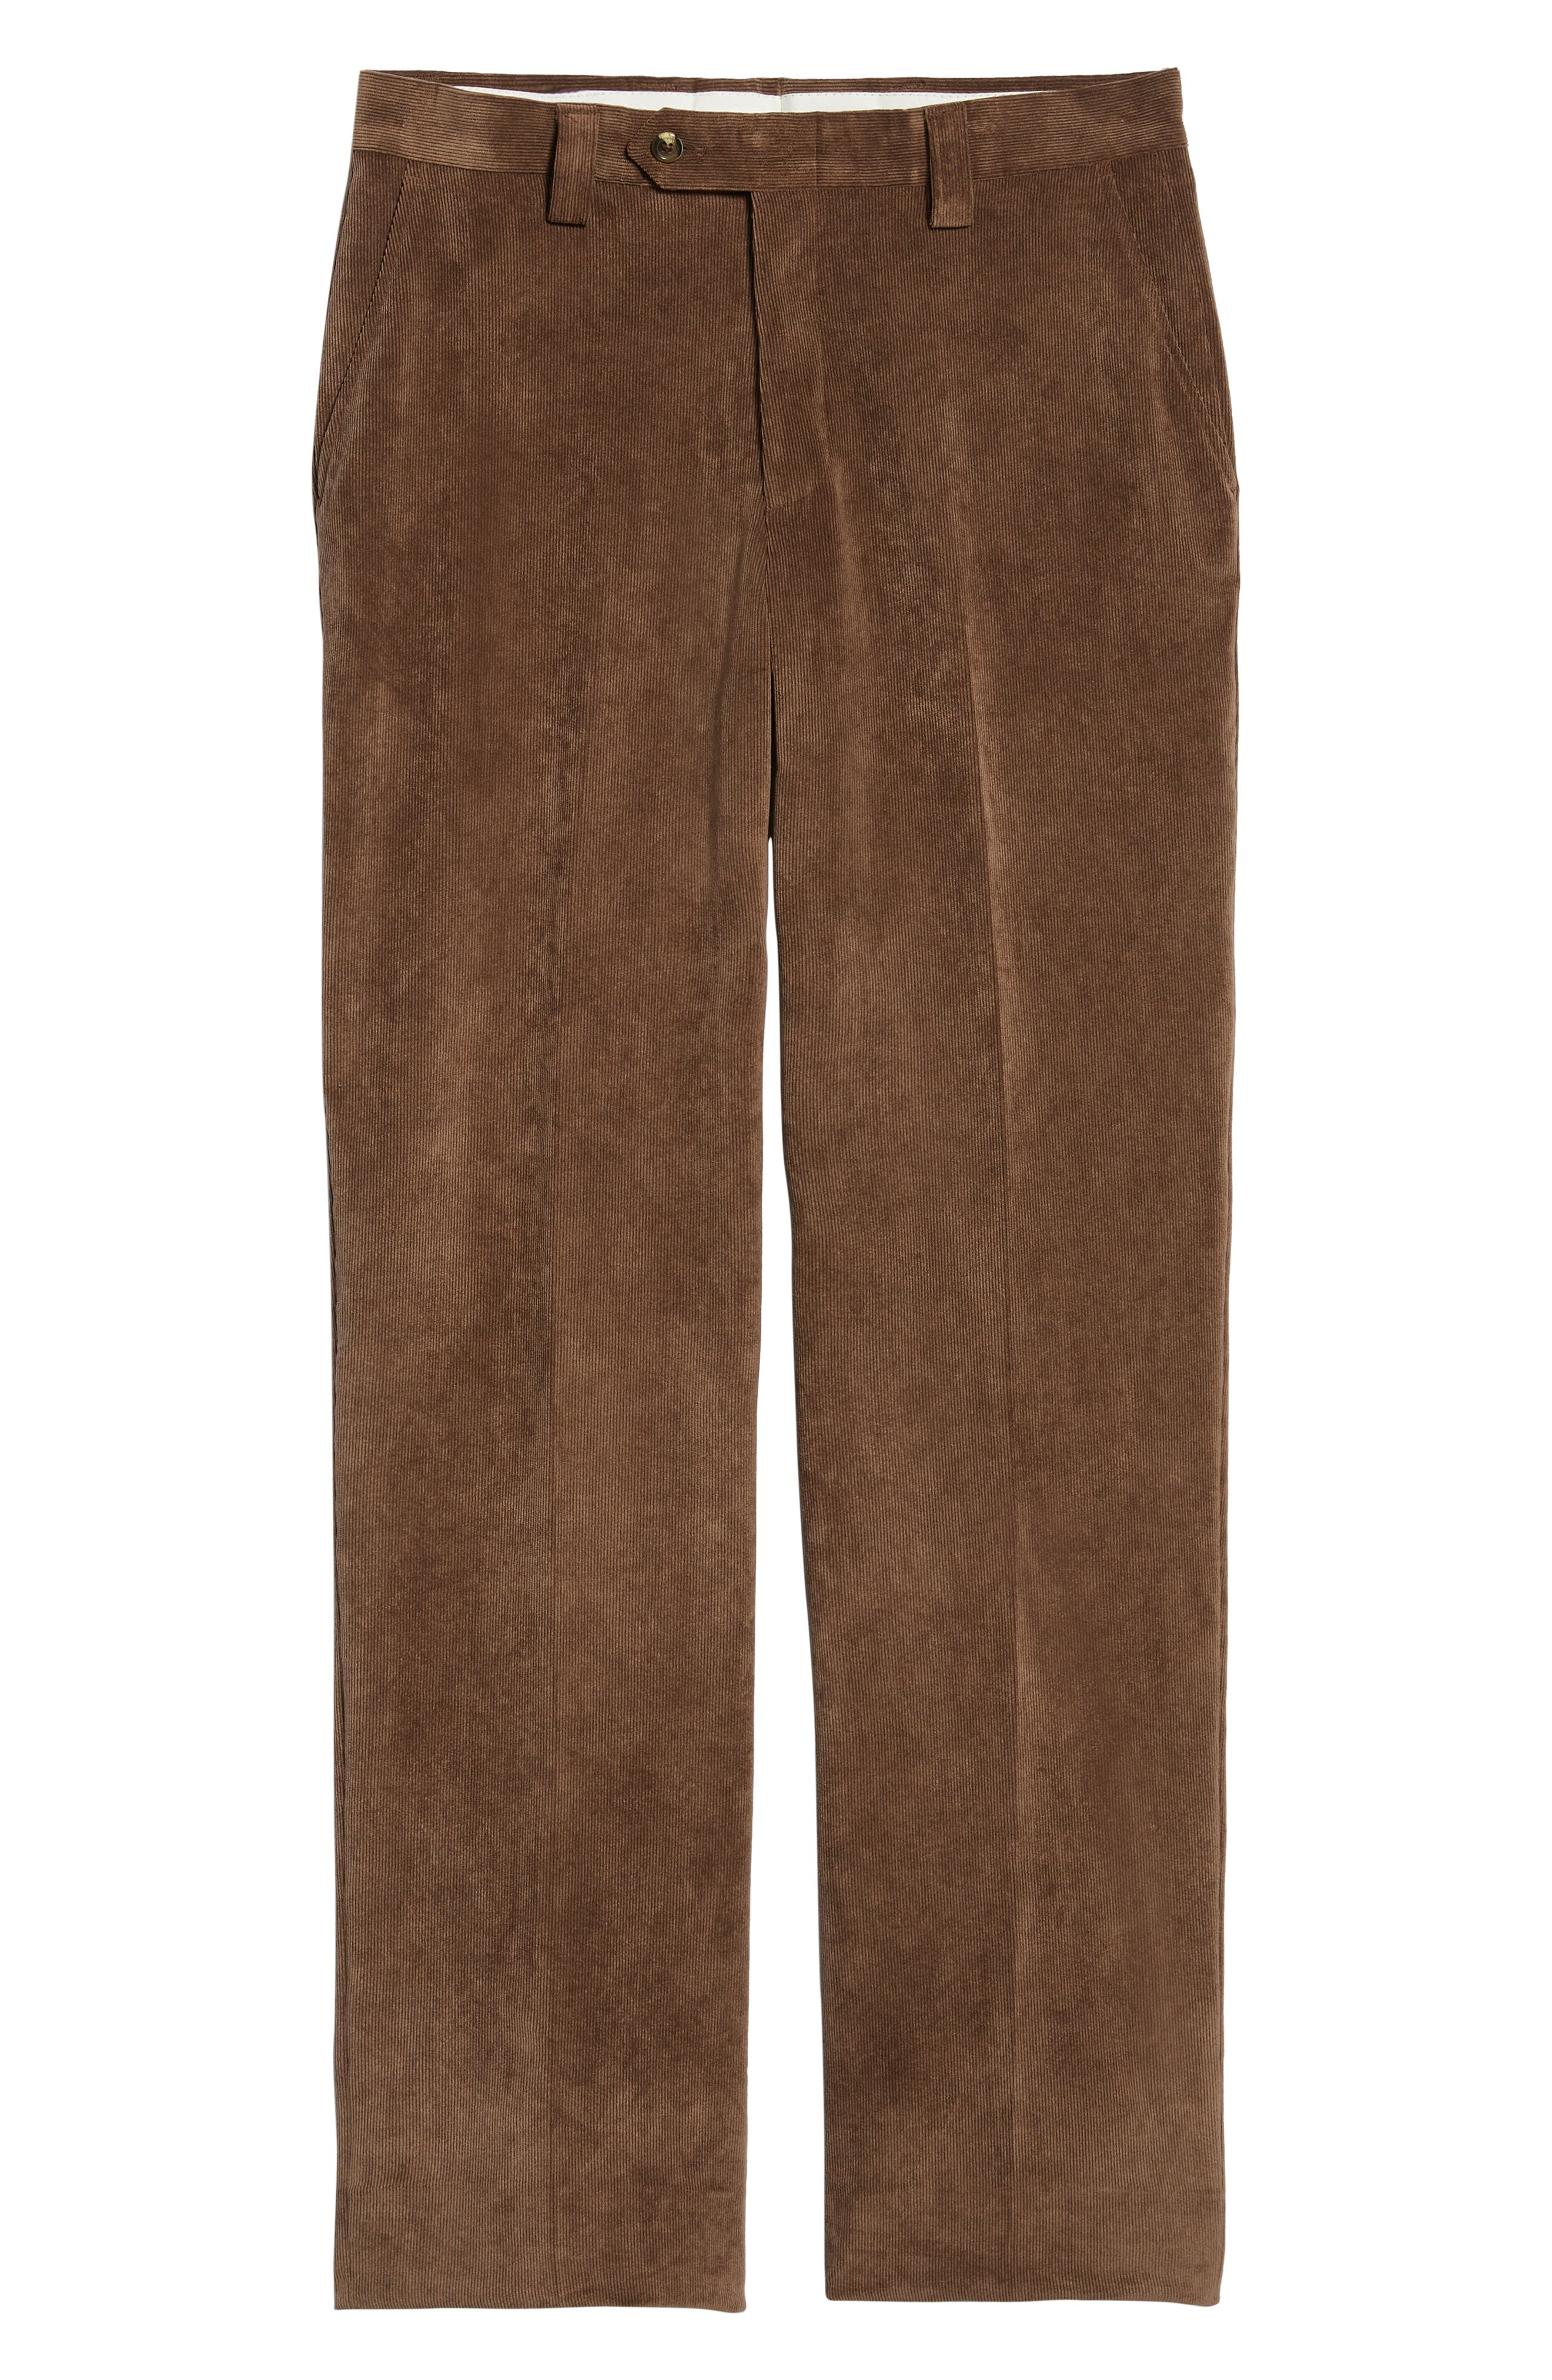 BERLE,                             Classic Fit Flat Front Corduroy Trousers,                             Alternate thumbnail 6, color,                             200